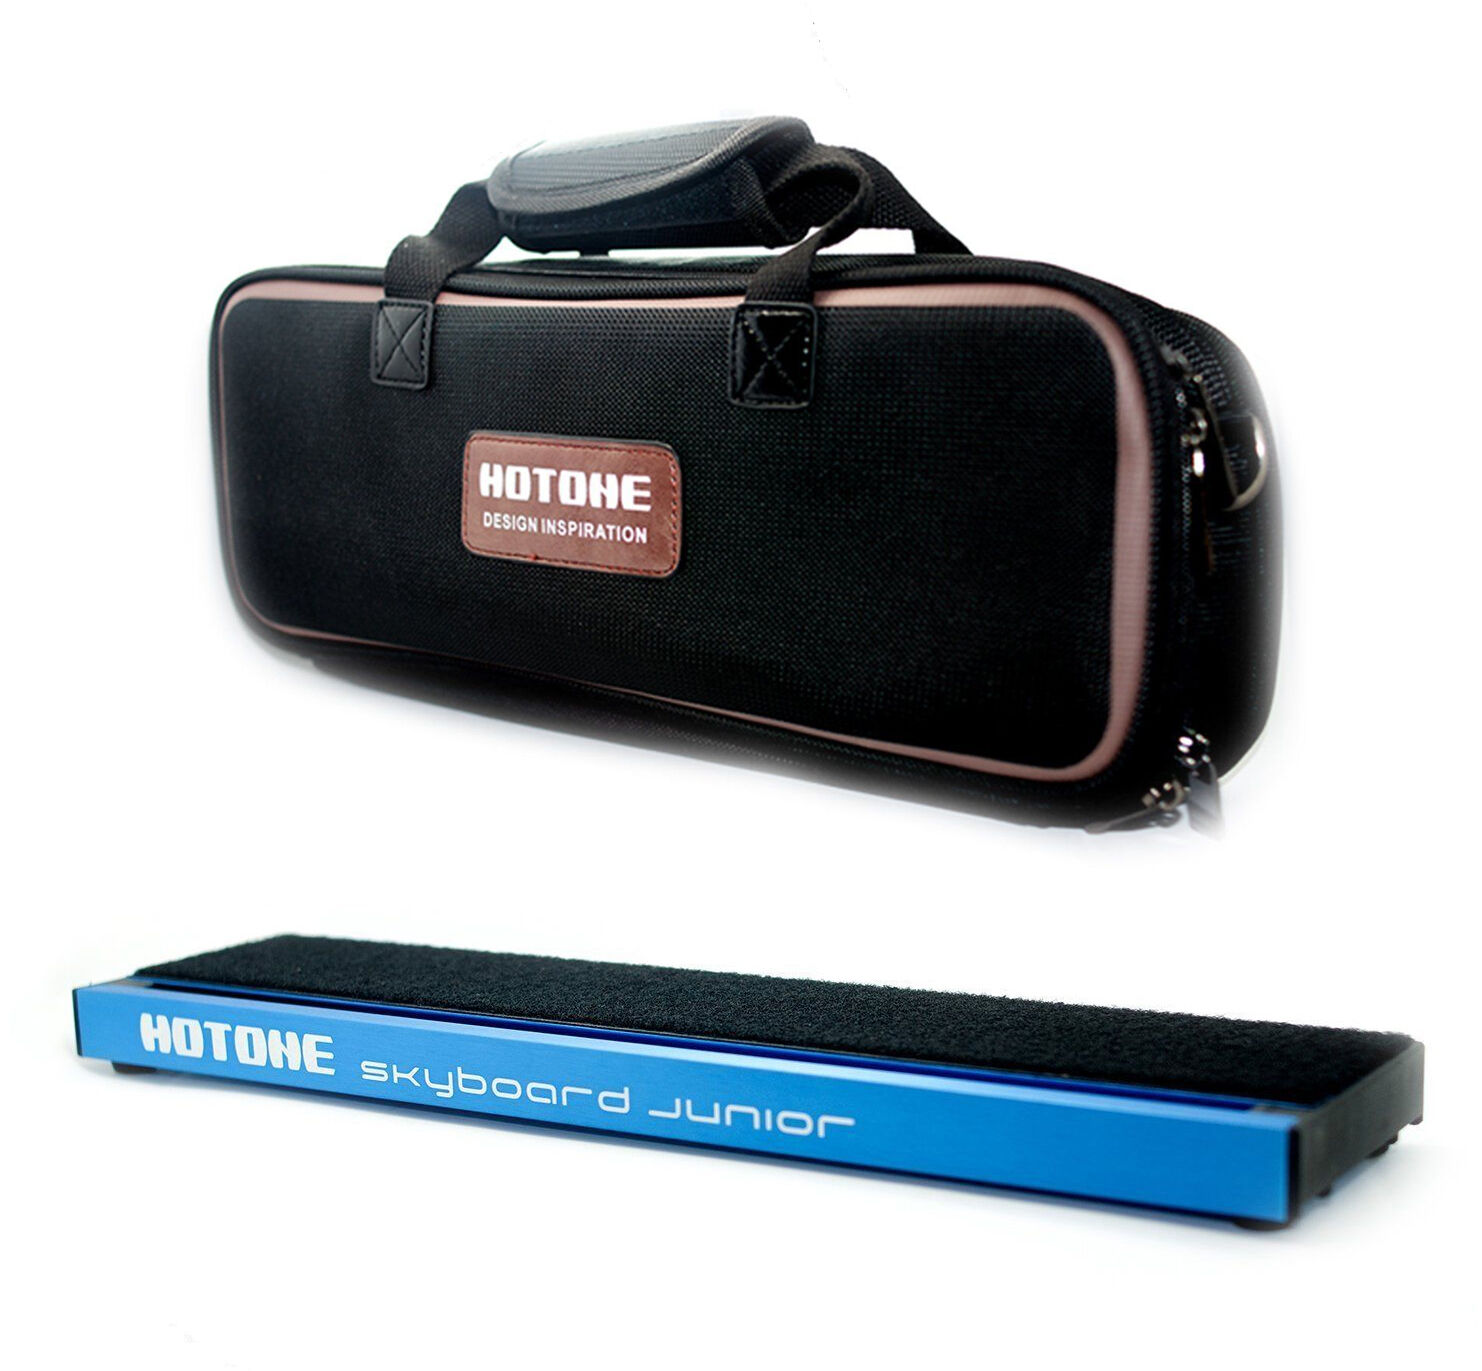 Hotone Skyboard Junior Mini Pedalboard for Skyline Pedals with Bag